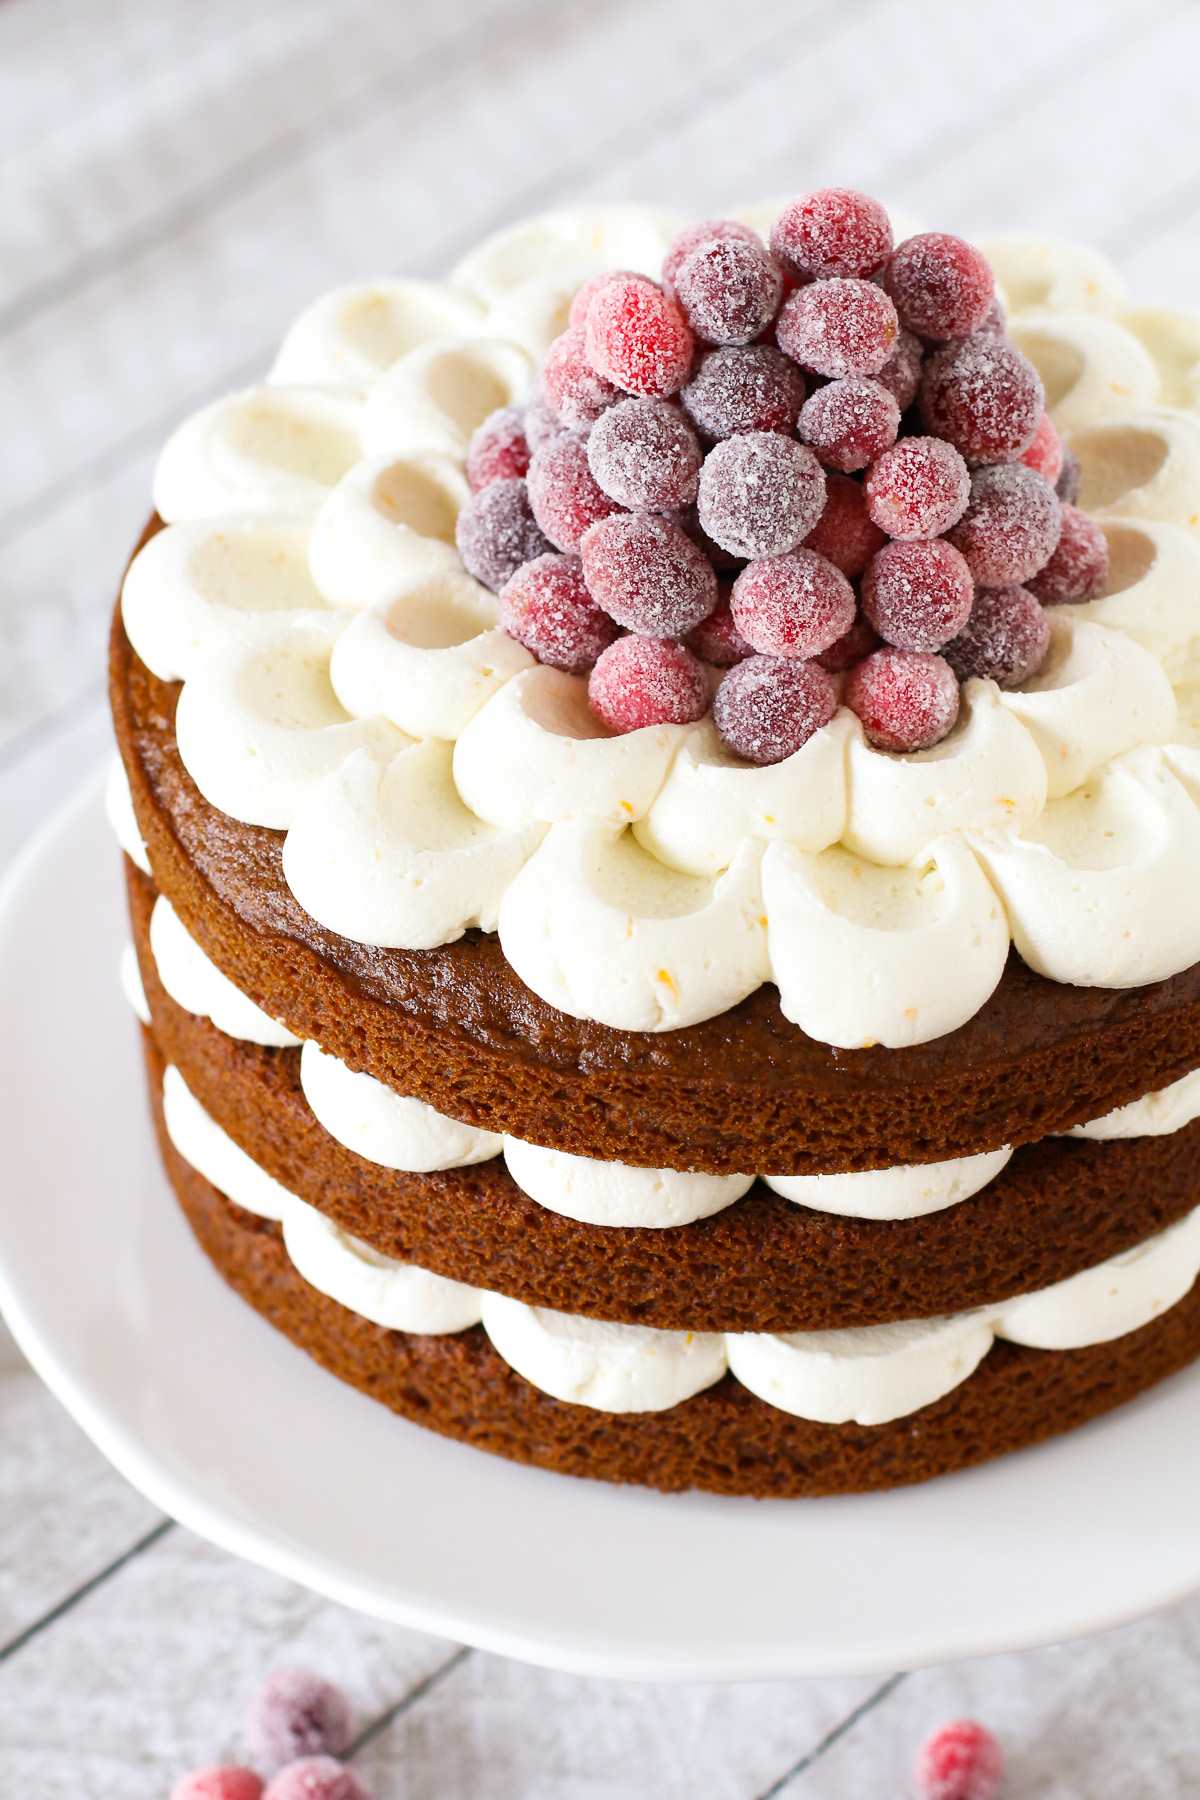 Gluten Free Vegan Gingerbread Layer Cake with Sugared Cranberries. Layers of gingerbread spice cake and dairy free orange buttercream, topped with a mountain of beautiful sugared cranberries!